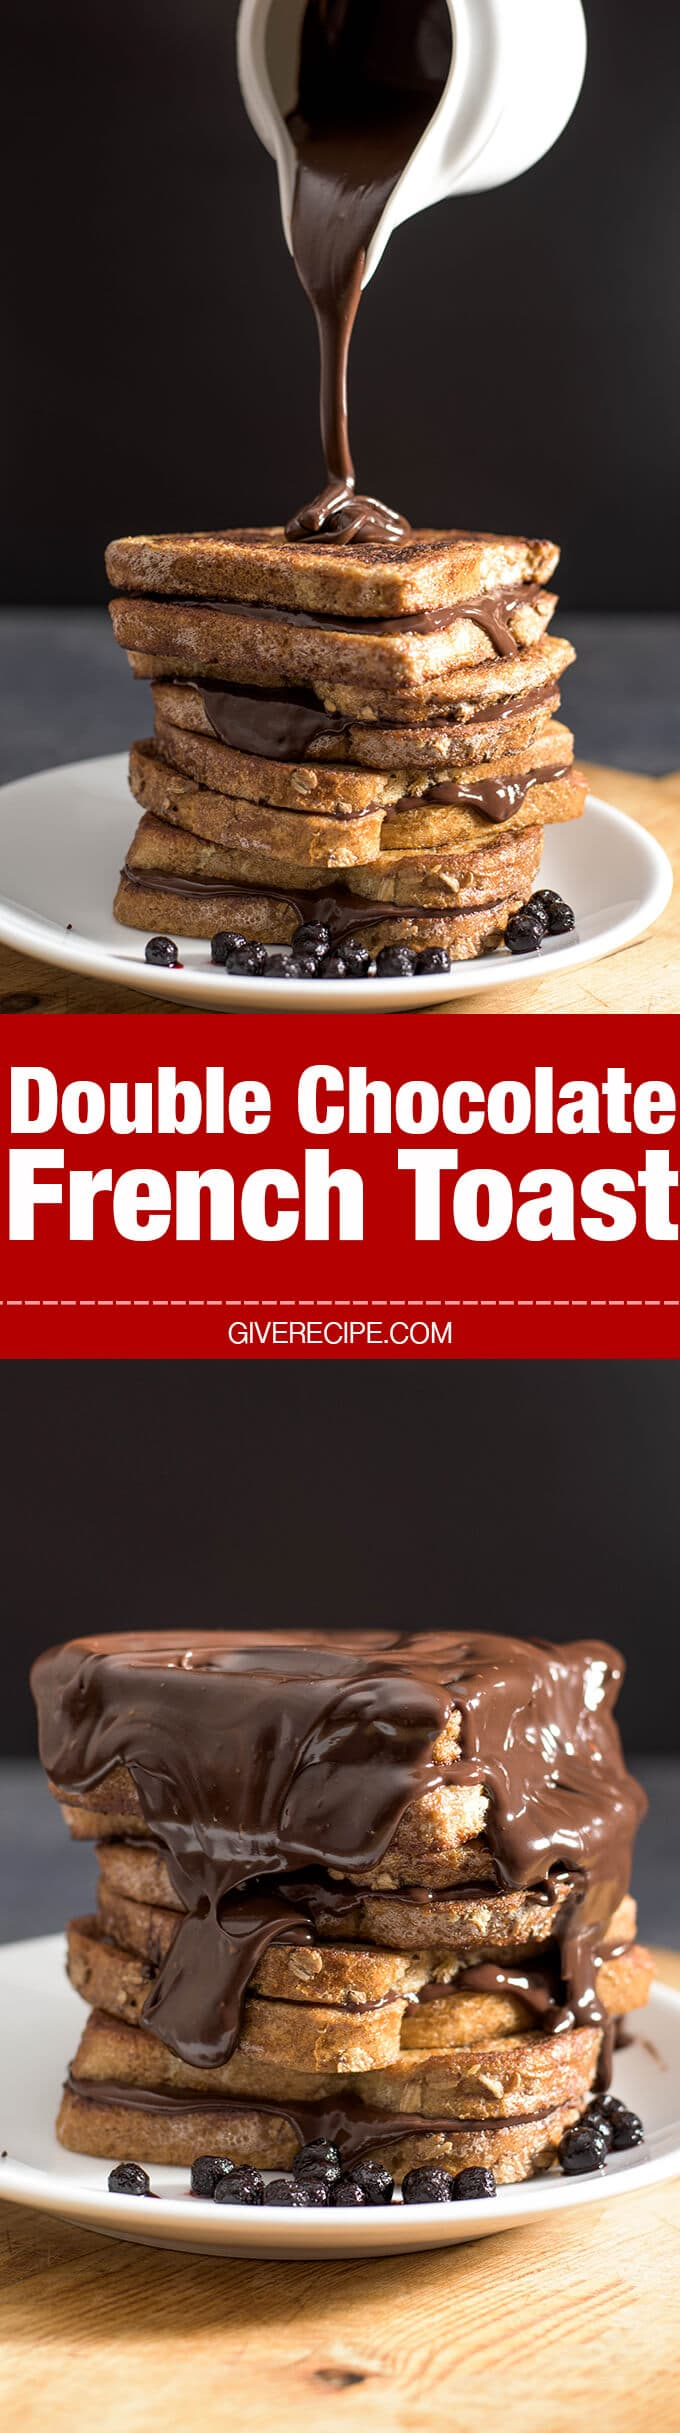 Best ever french toast sandwiched and covered with chocolate ganache ...